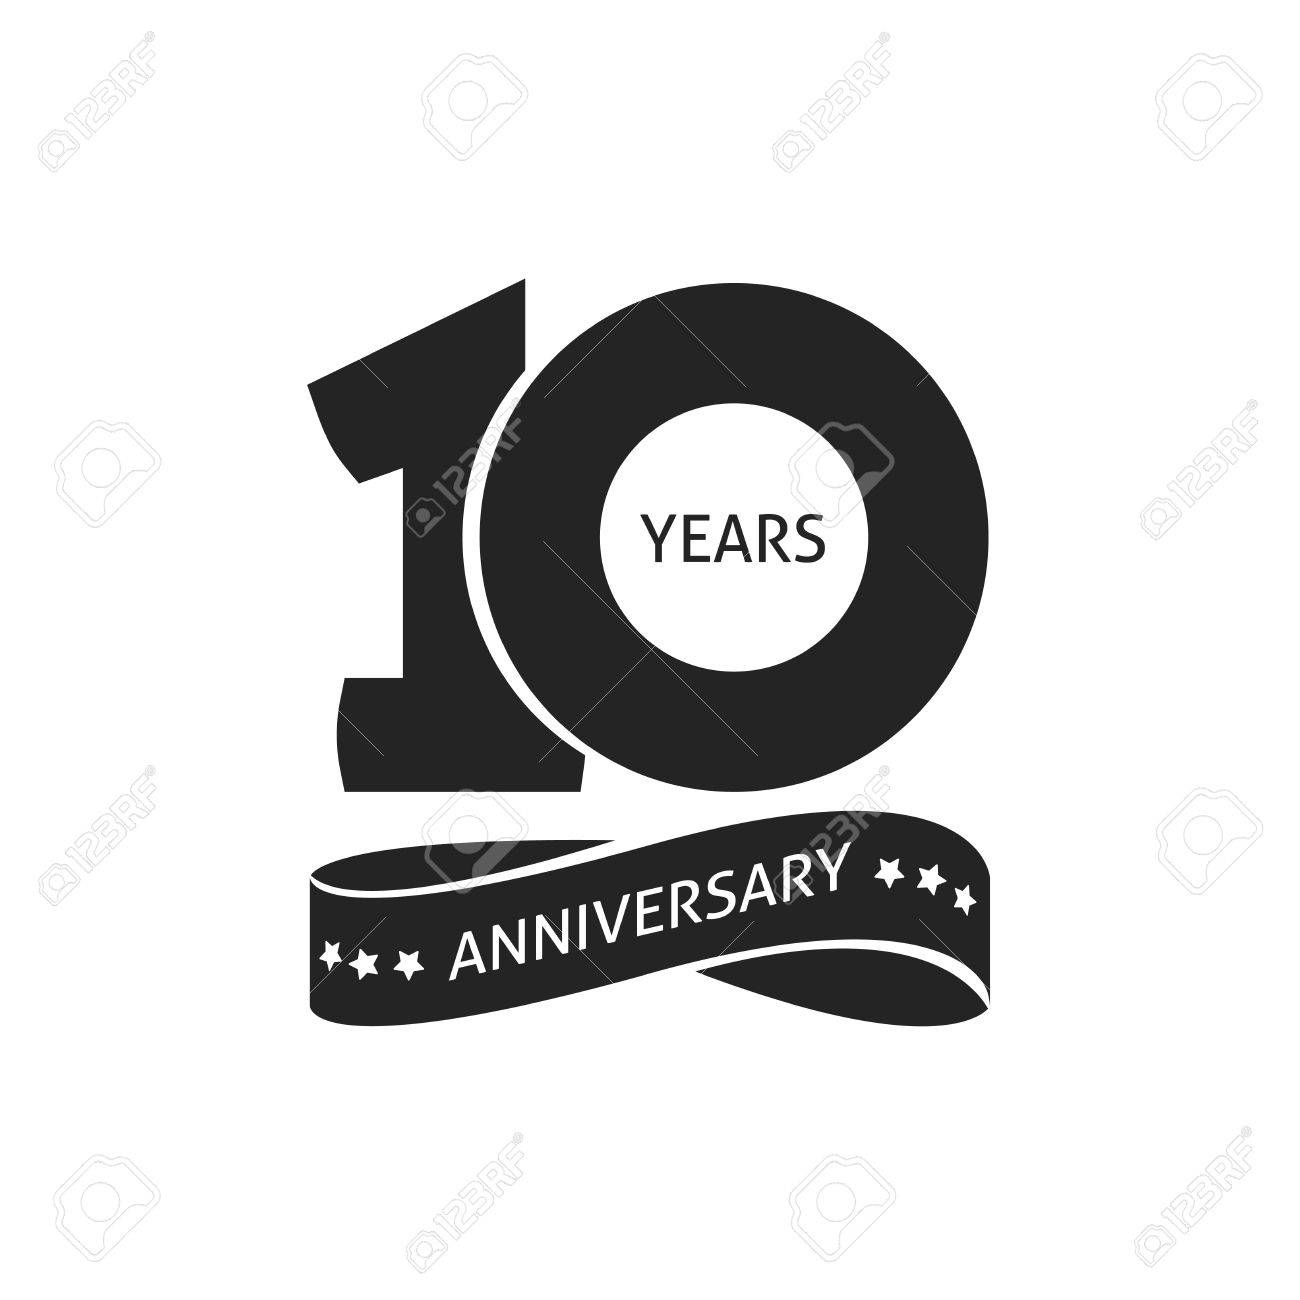 10 years anniversary pictogram vector icon, 10th year birthday logo label, black and white stamp isolated - 72305537